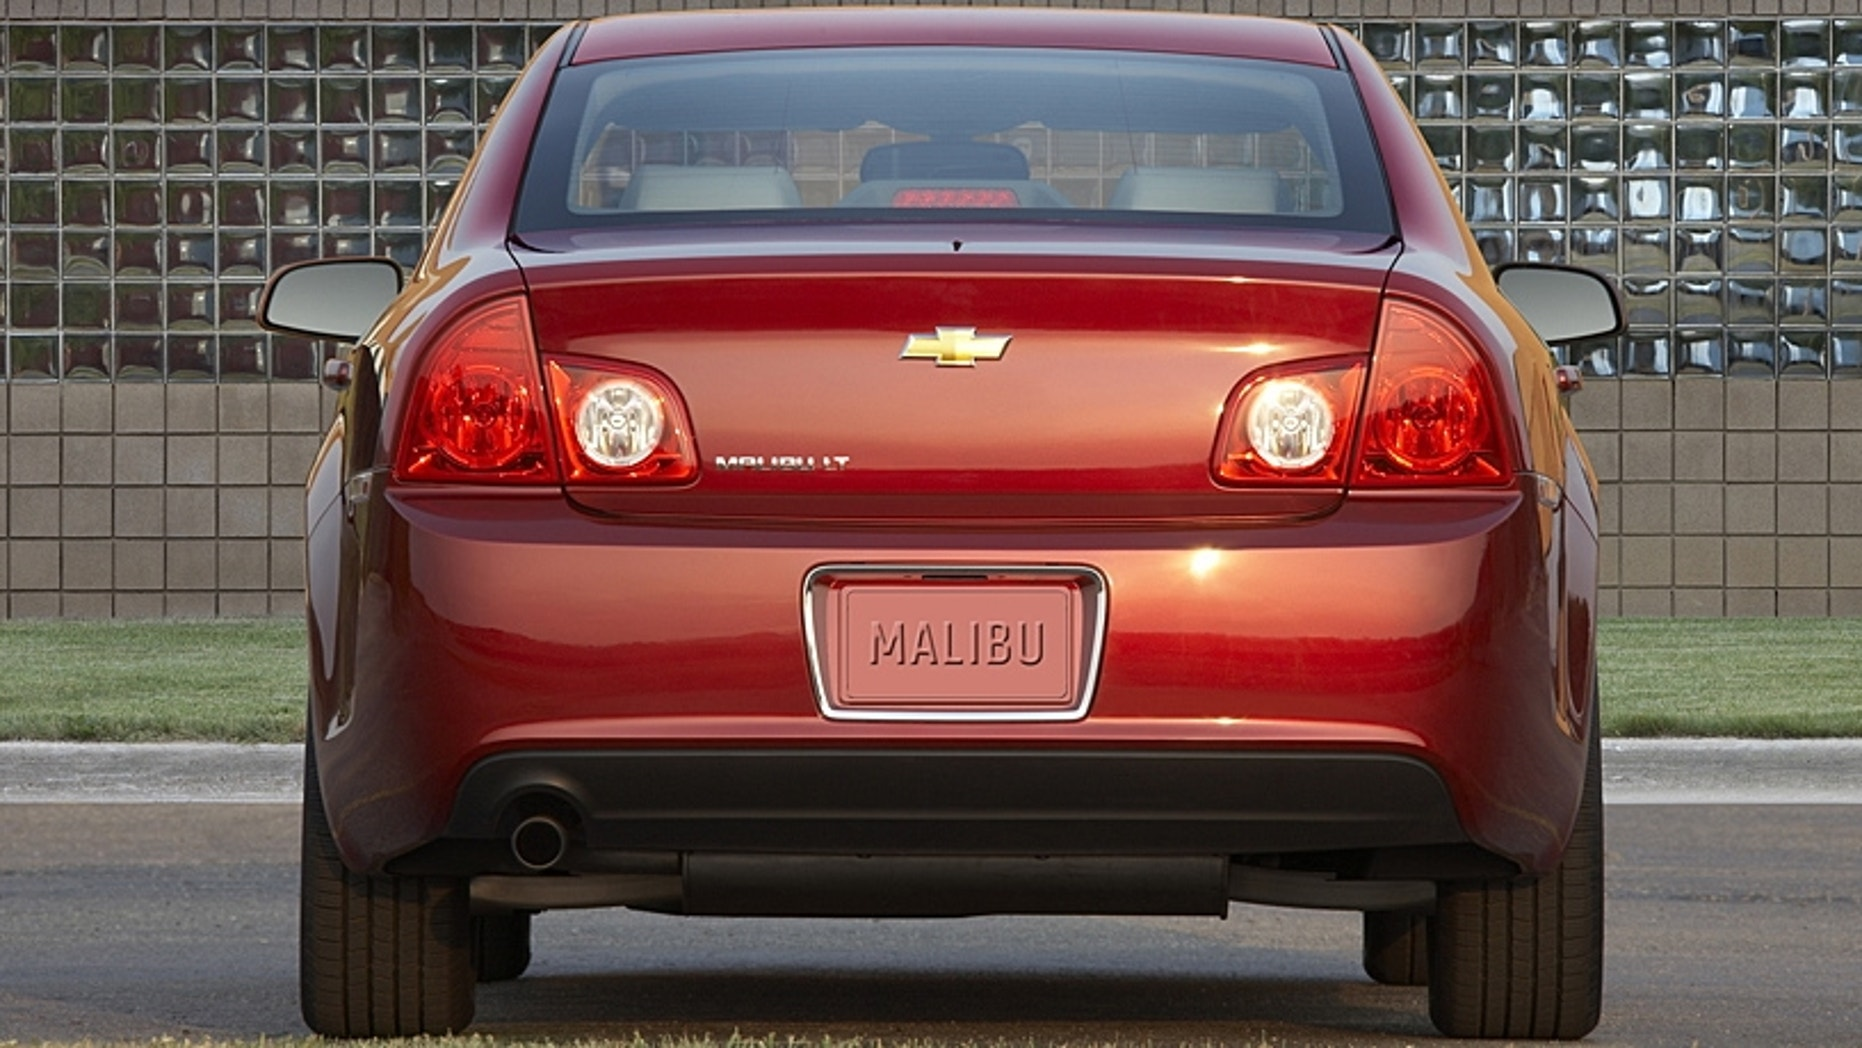 Bad brake lights could force recall of over one million GM